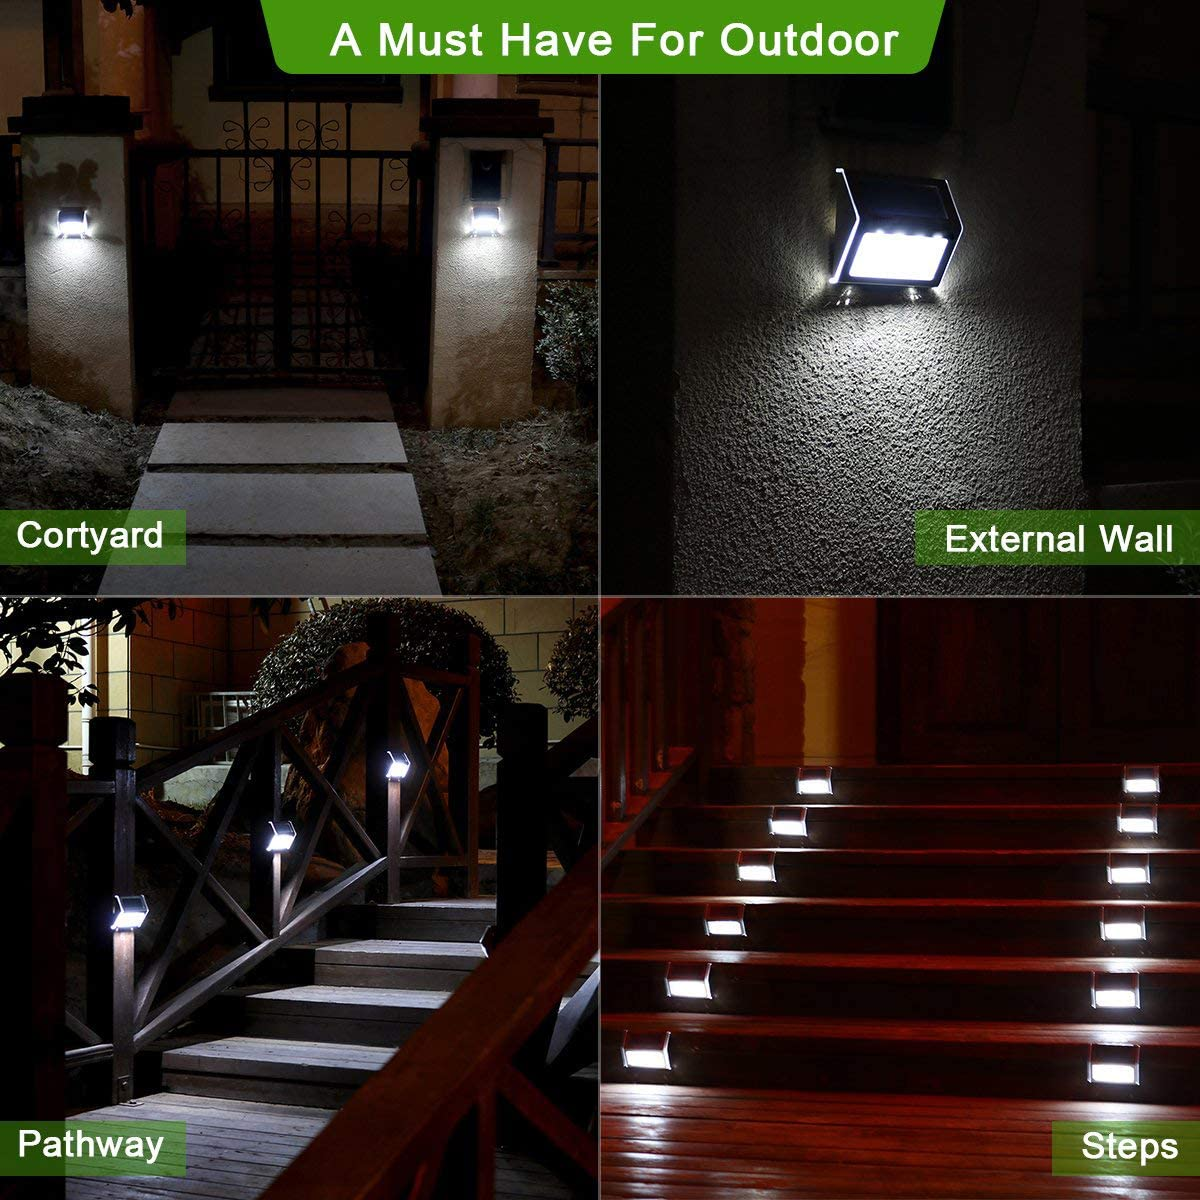 Luces Solares para Exterior Jardín 4LED Easternstar, Lámparas Solares impermeable IP44 Exterior, Solar Panel del acero inoxidable, 4 LED Ilumina a las escaleras, pared,patio y jardín etc.(10 unidades): Amazon.es: Iluminación